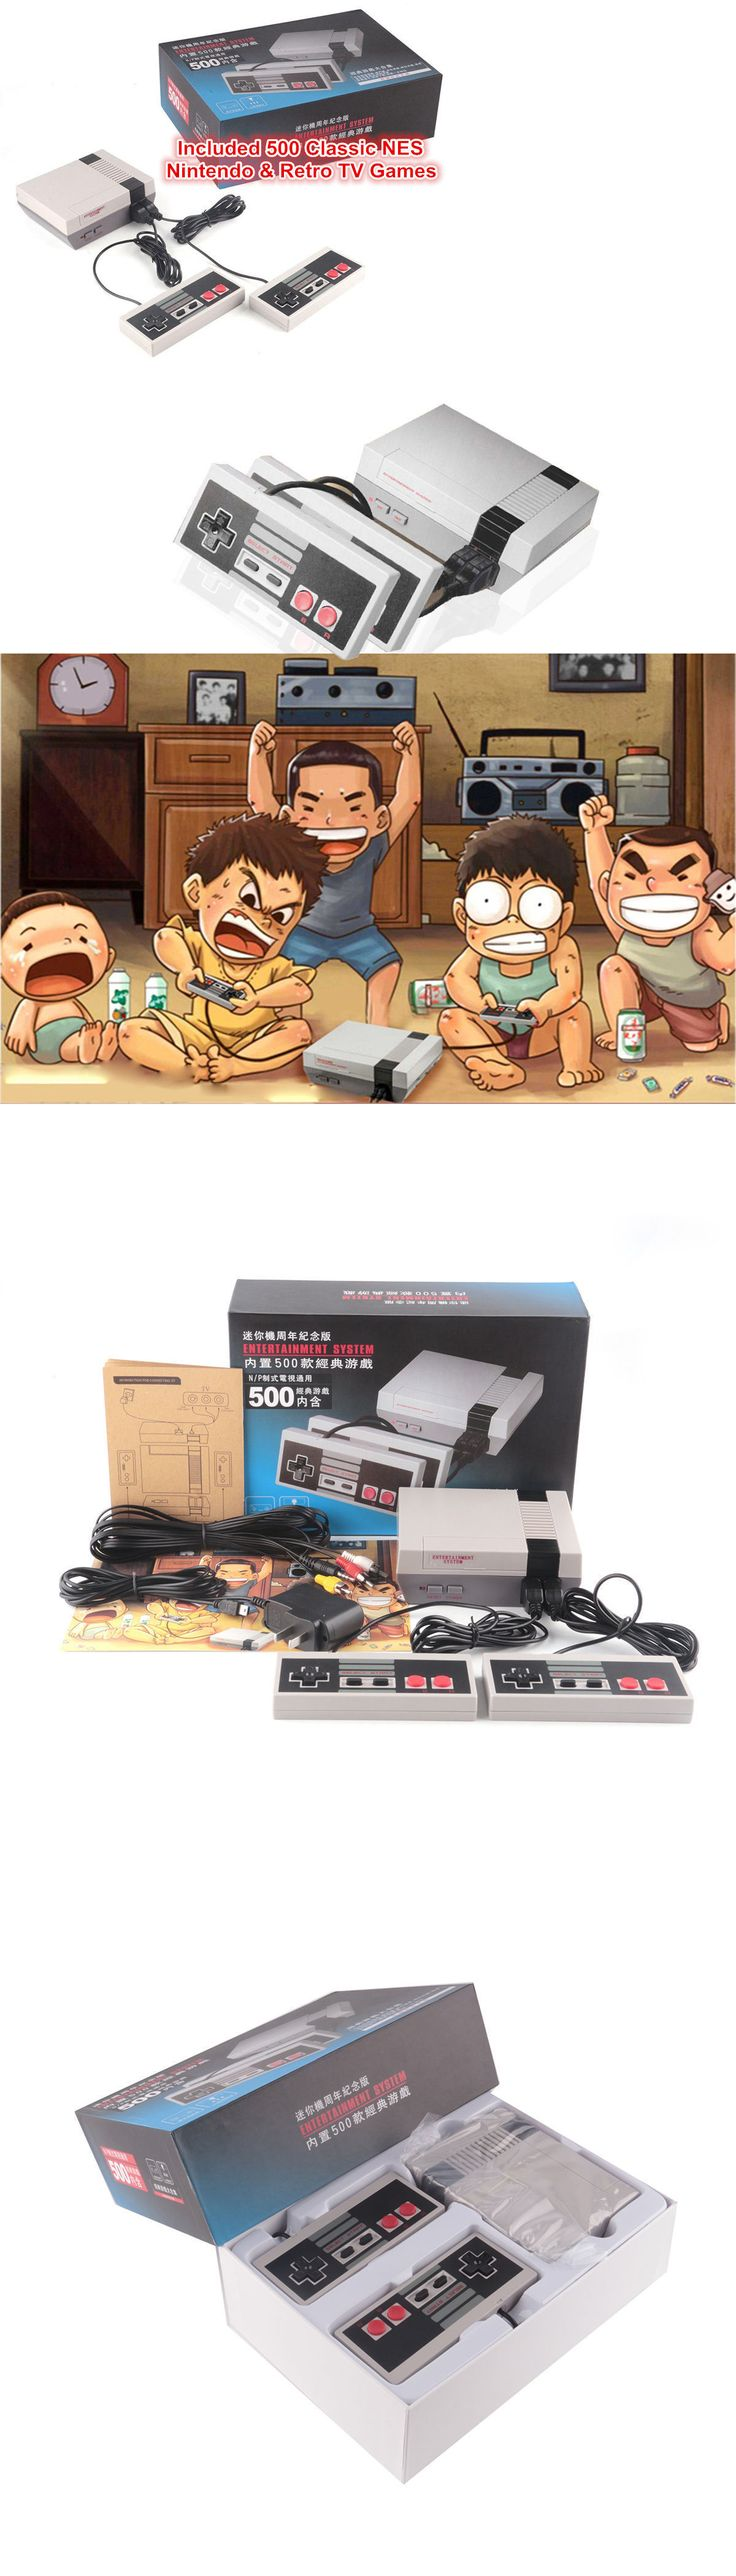 Other TV Video and Home Audio: Mini Classic Edition Nes Console Entertainment System +500 Retro Game Pal And Ntsc -> BUY IT NOW ONLY: $43.5 on eBay!